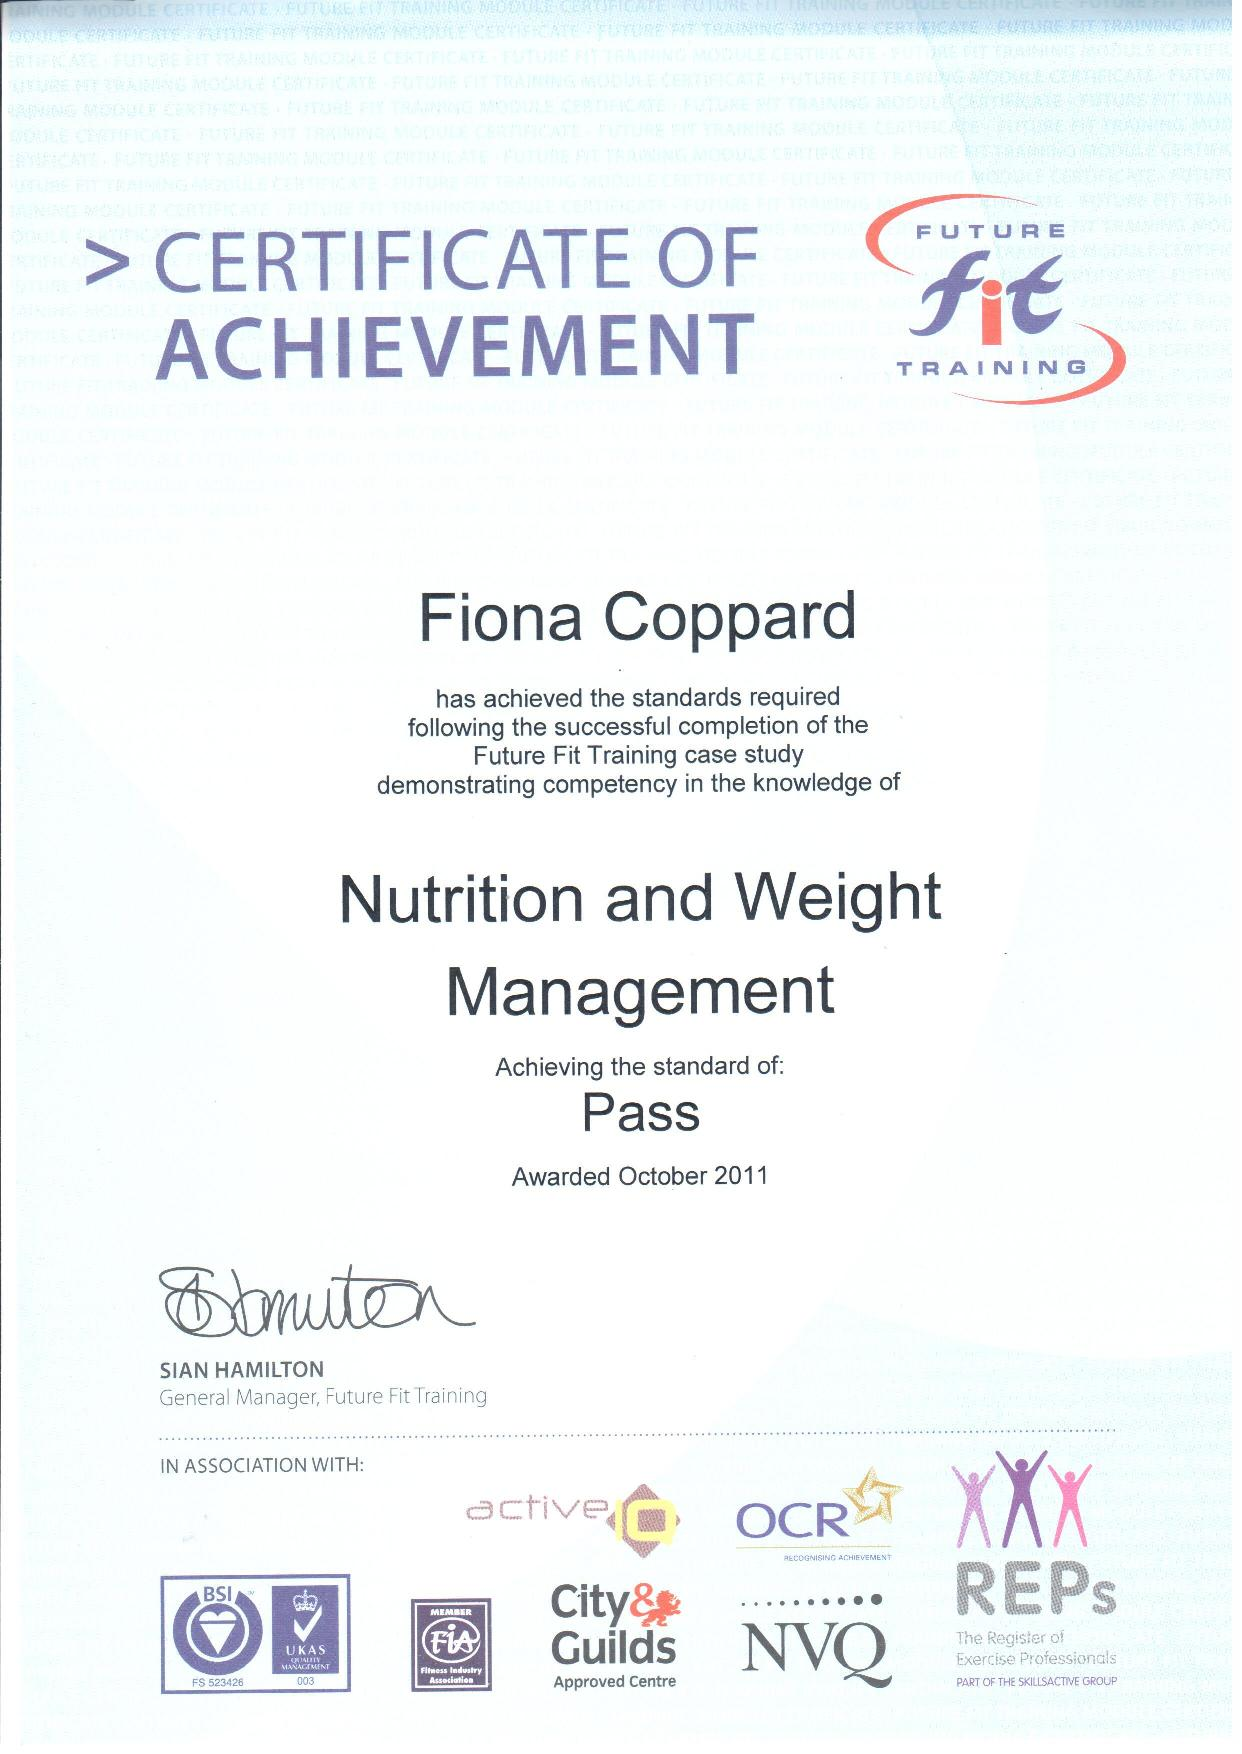 Fiona - certified in Nutrition and weight management